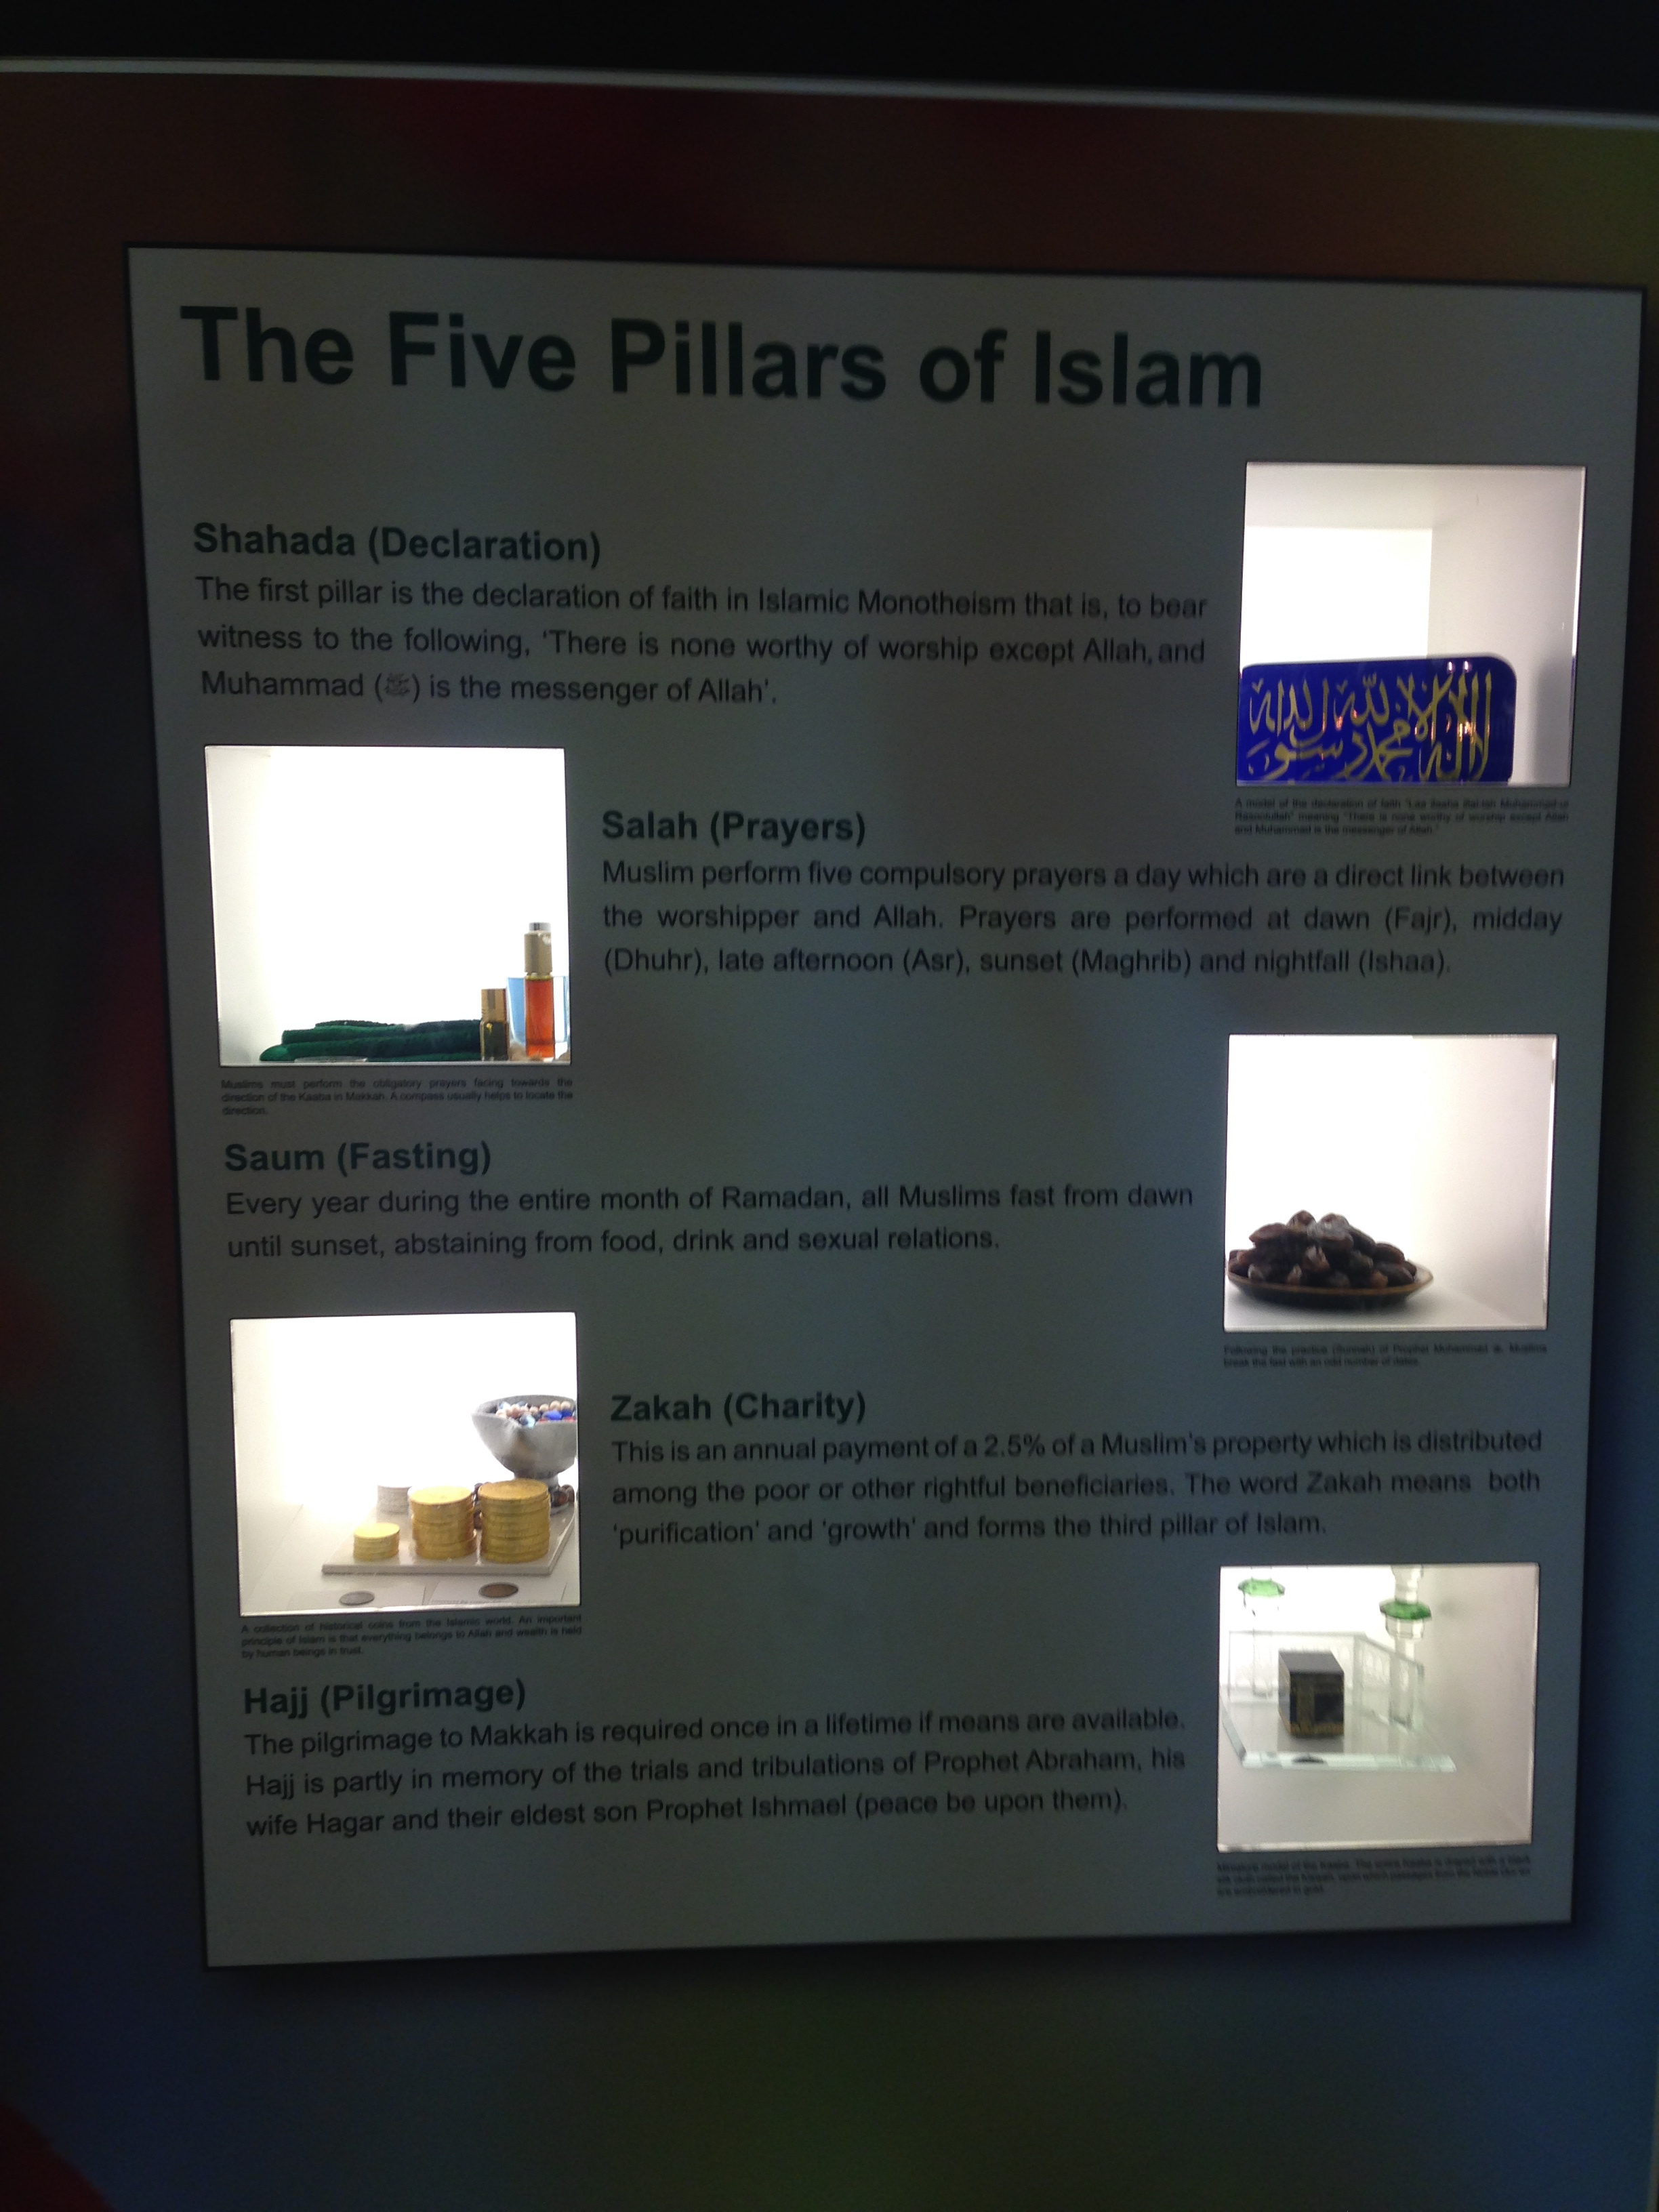 Class 5's trip to the Islamic Cultural Centre and Central